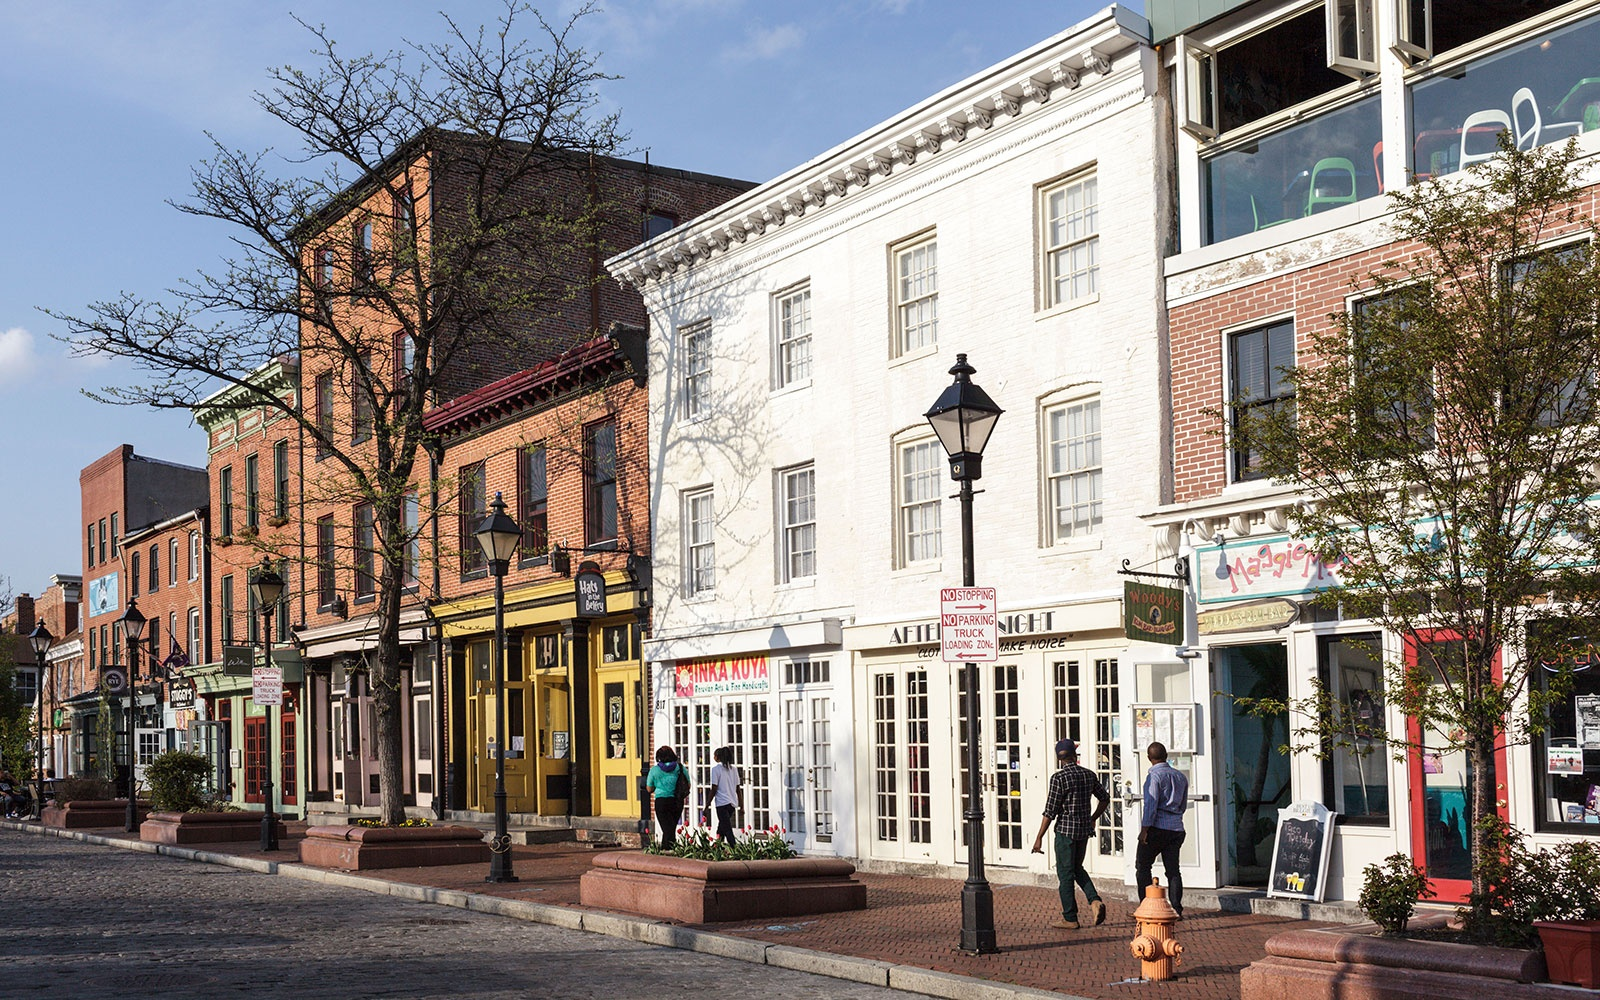 America's 20 Most Charming Cities 2015